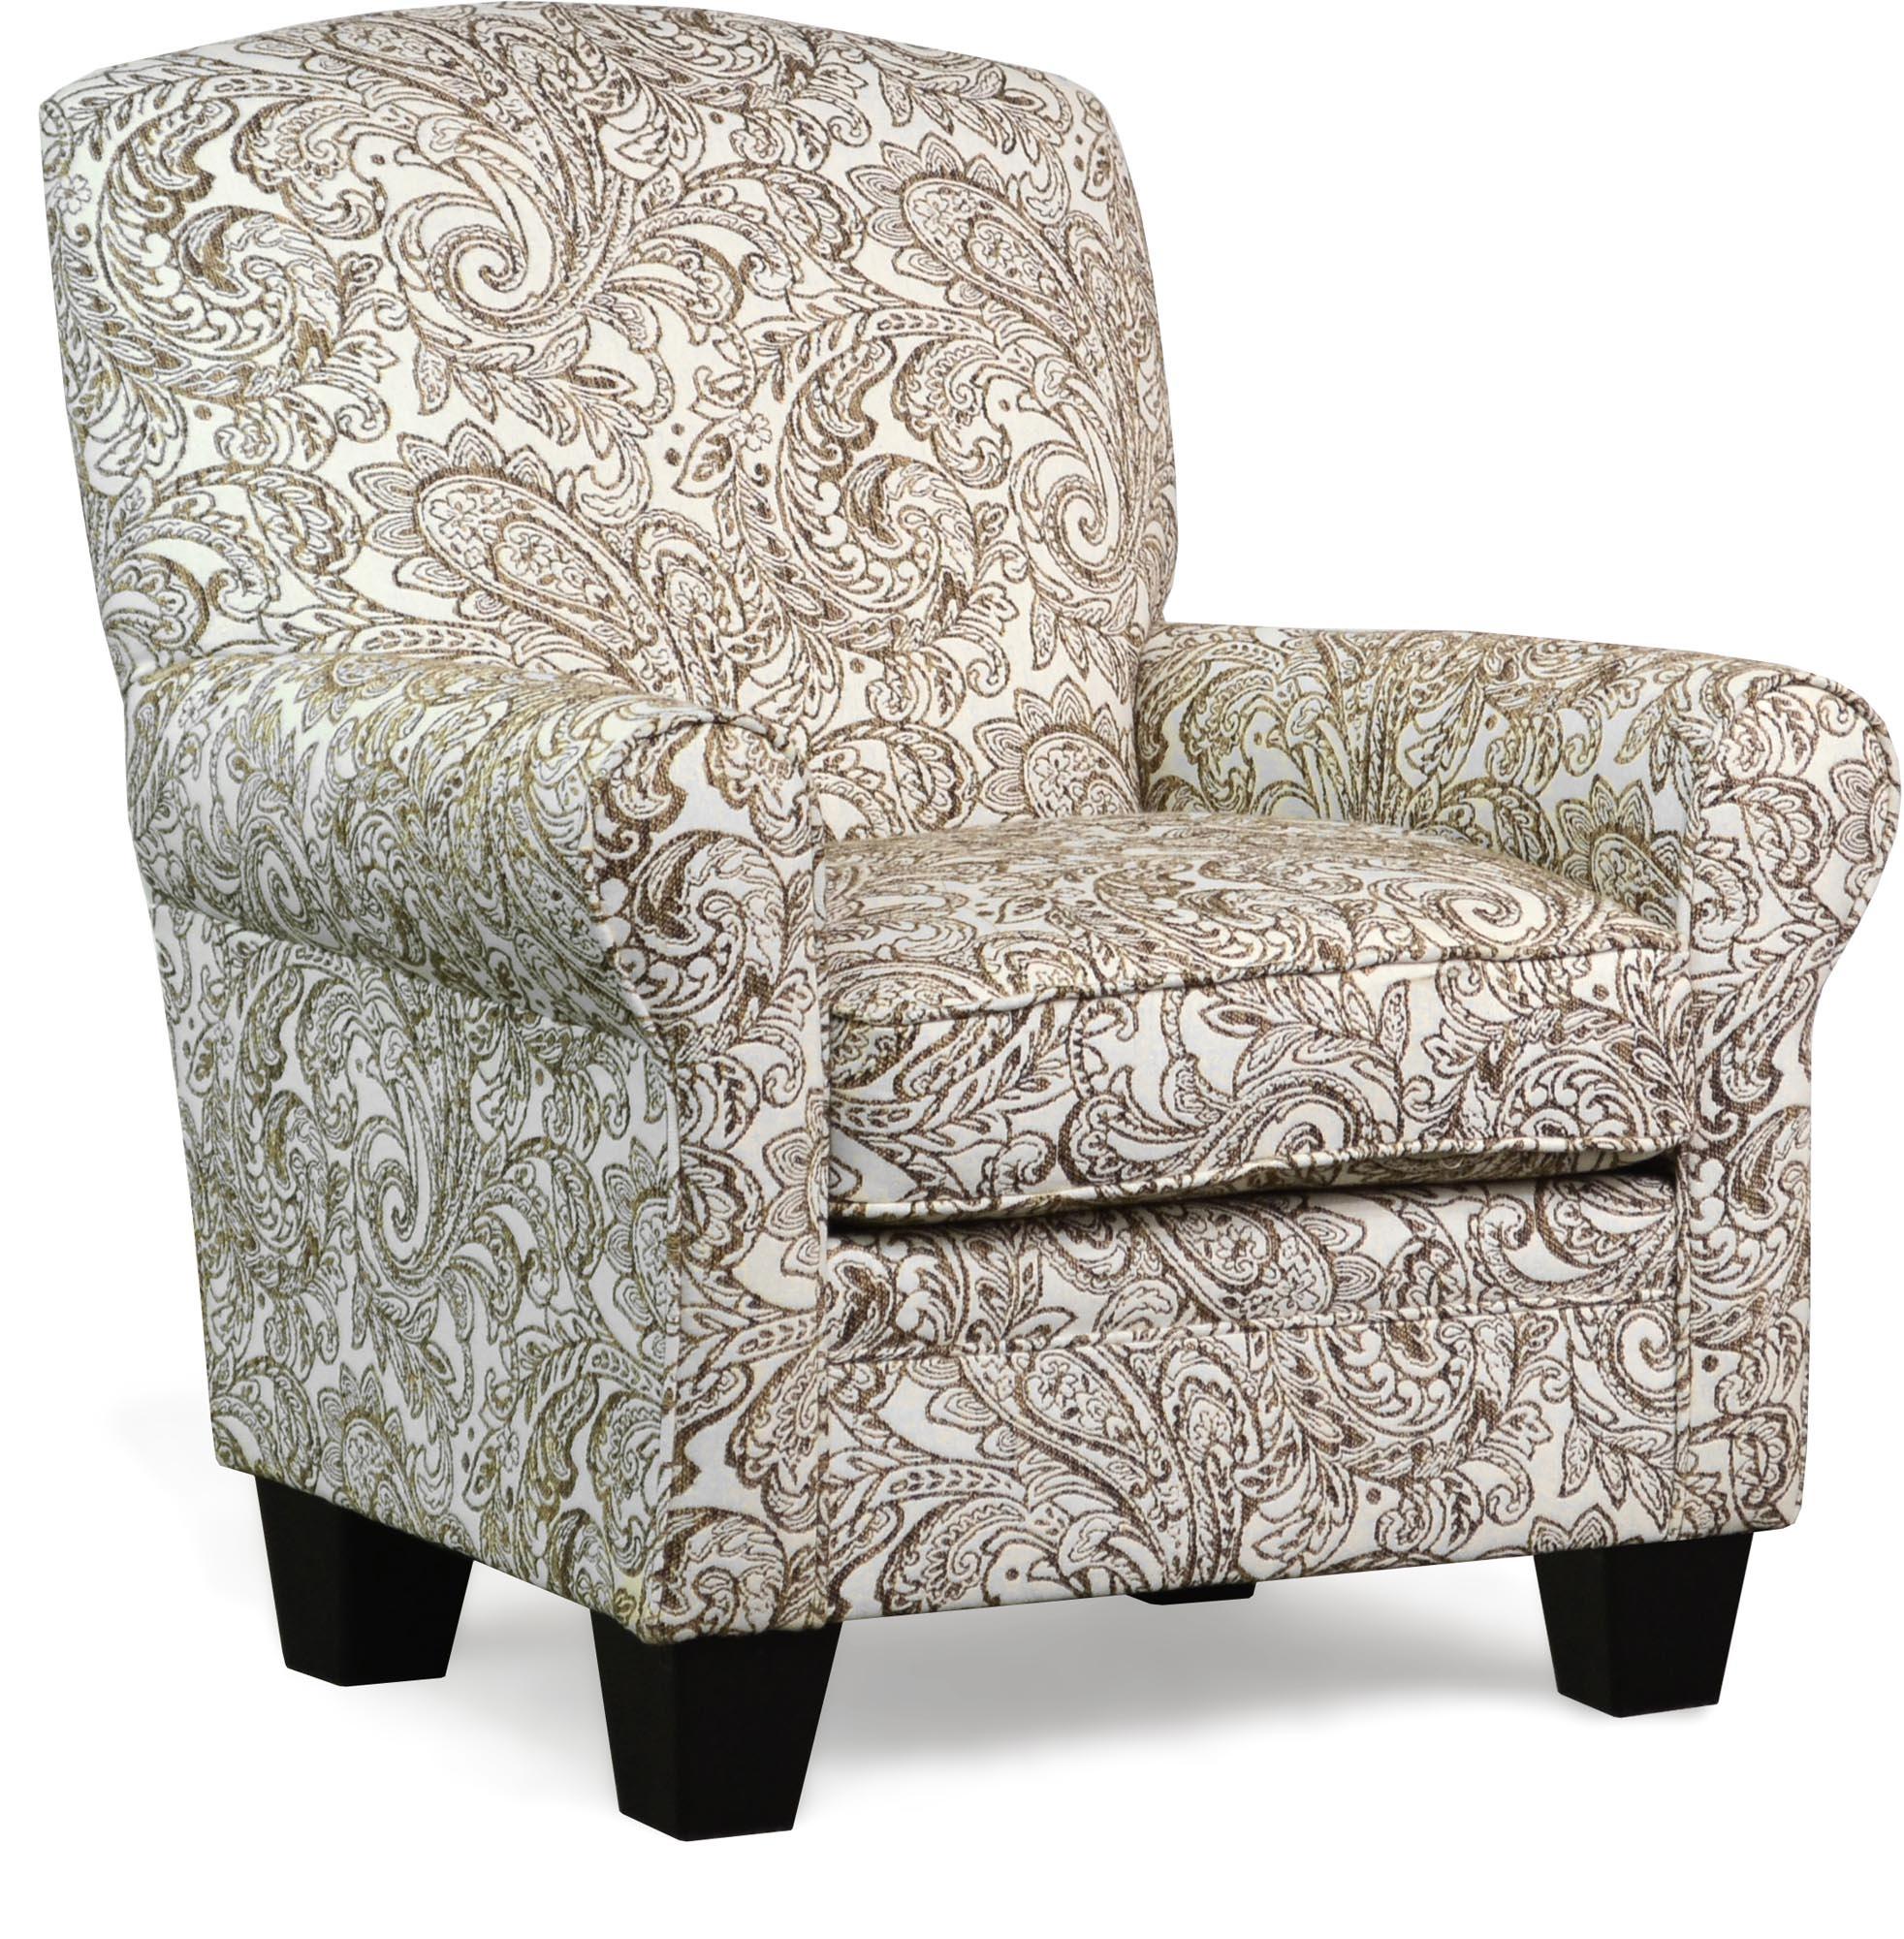 Cheap Accent Chair Industrial Lounge Furniture Clearance Center Chairs